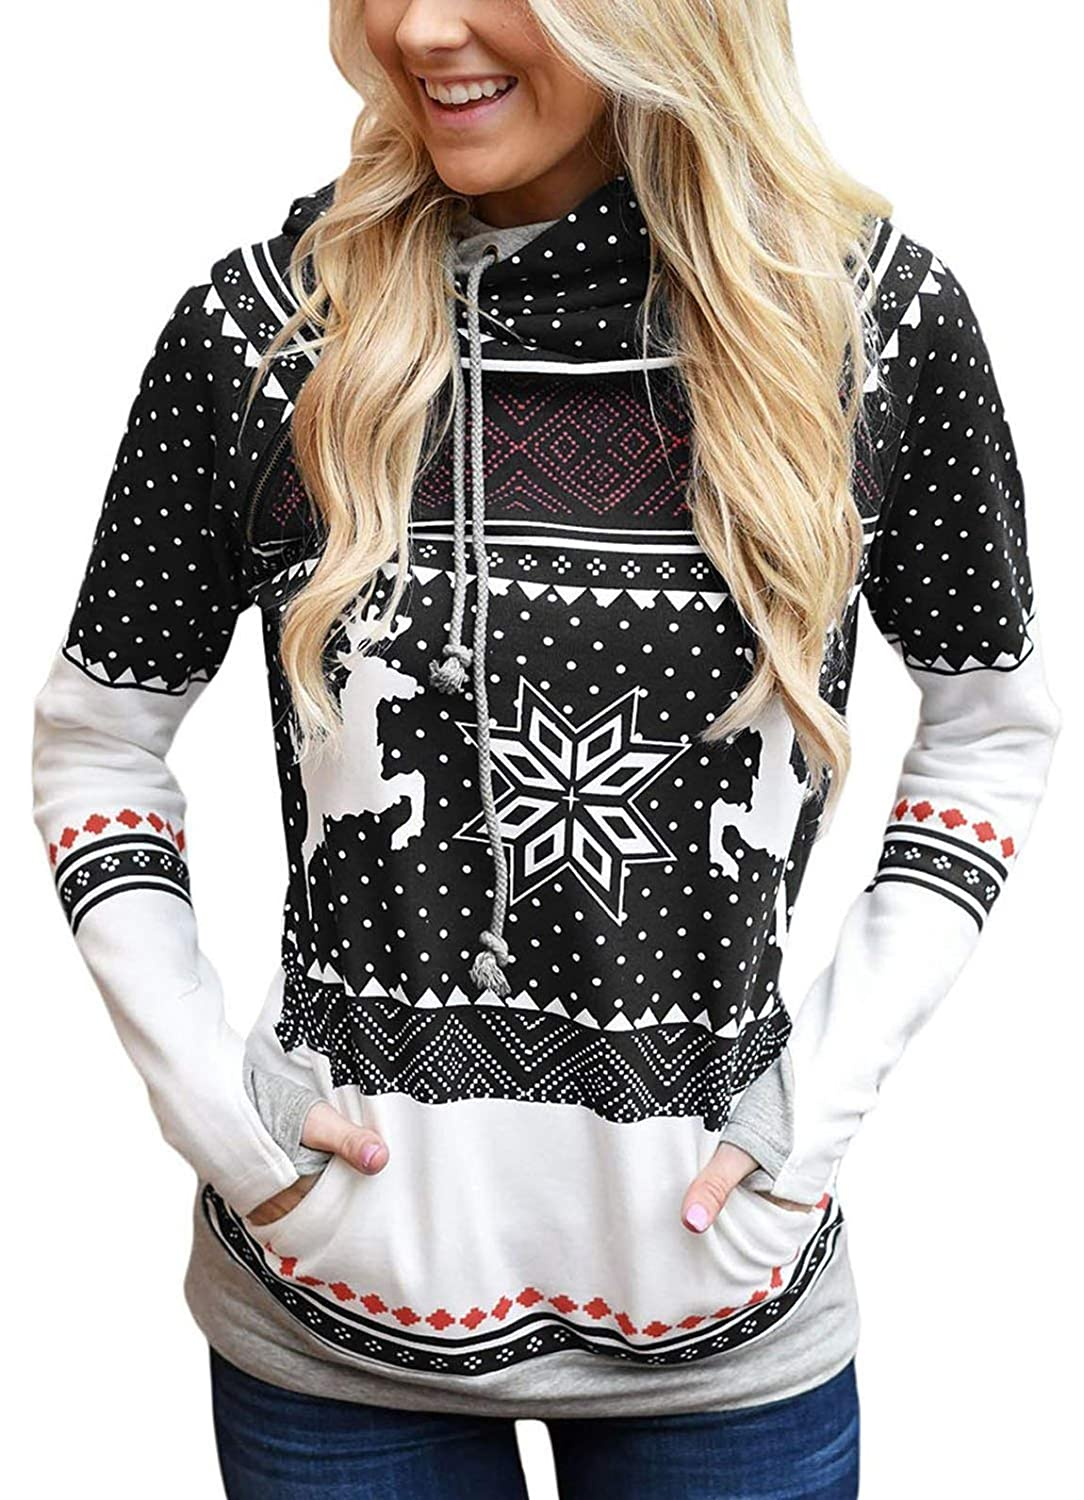 Womens Gifts for Christmas Hoodies Snowflake Reindeer Print Jumpers Hooded Xmas Pullover Drawstring Sweatshirts Tops with Pocket